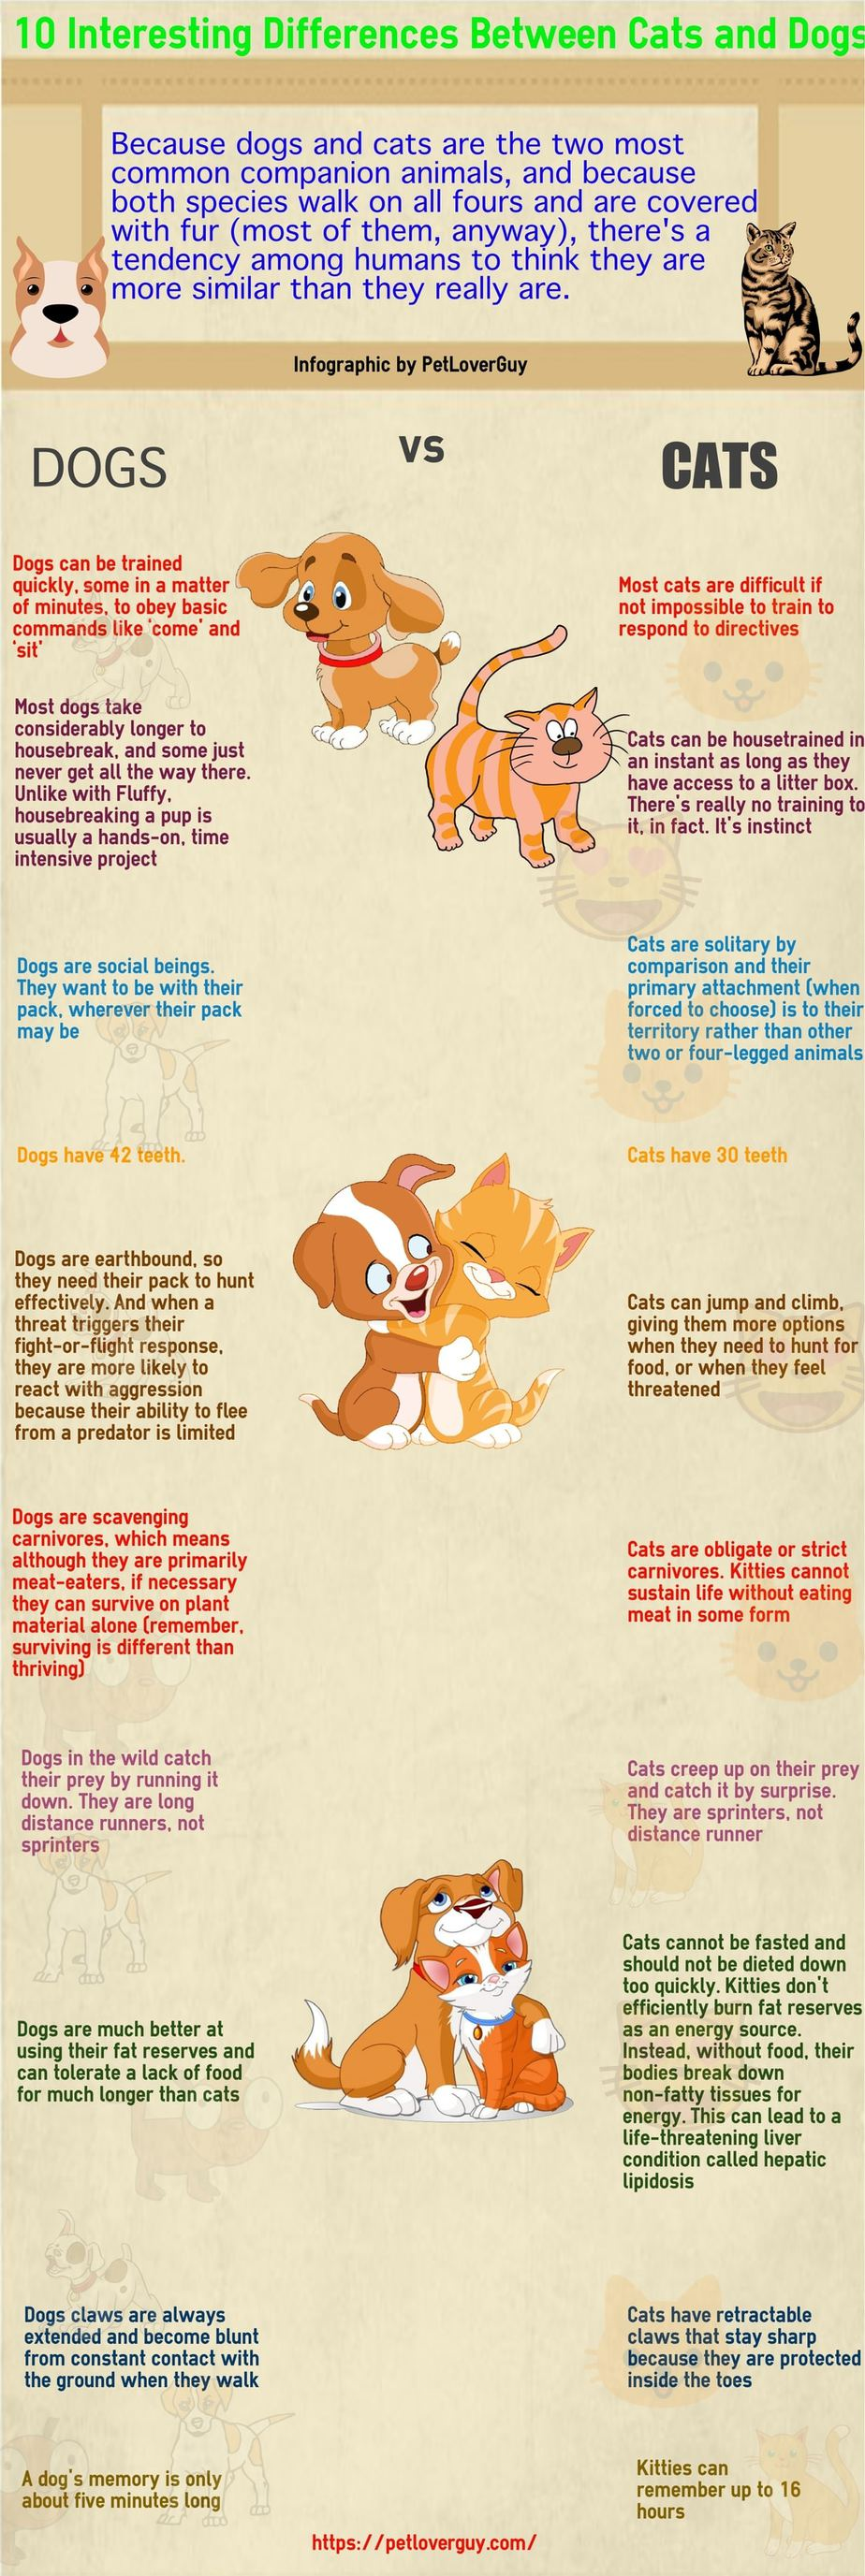 Best Dog Food For Labs >> 10 Main Differences Between Cats And Dogs (Infographic)